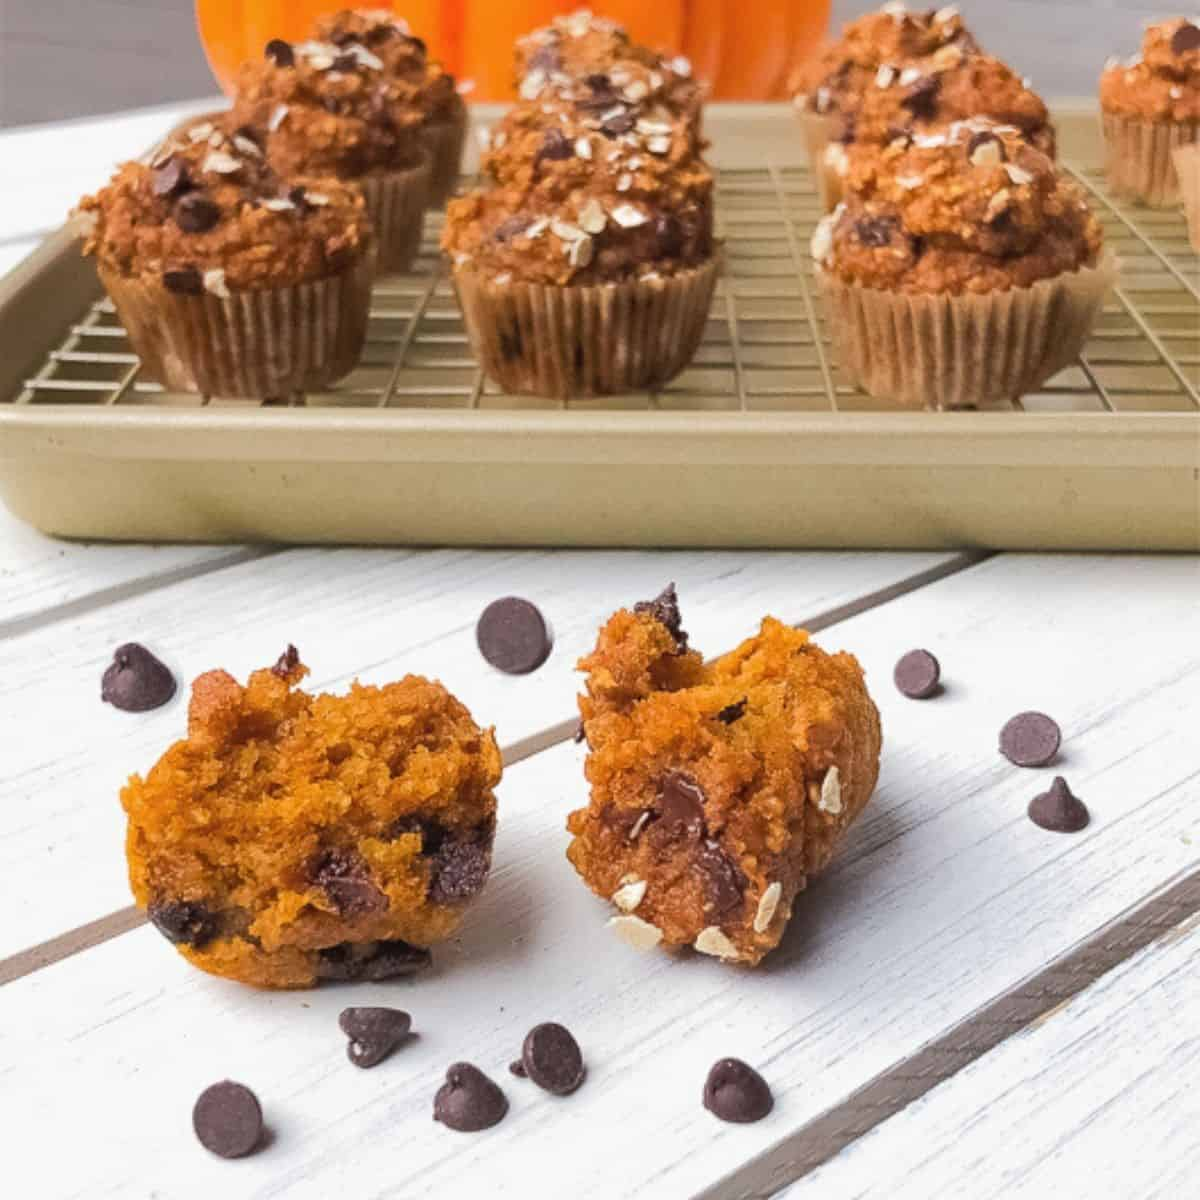 pumpkin pie mini muffins with chocolate chips on a table